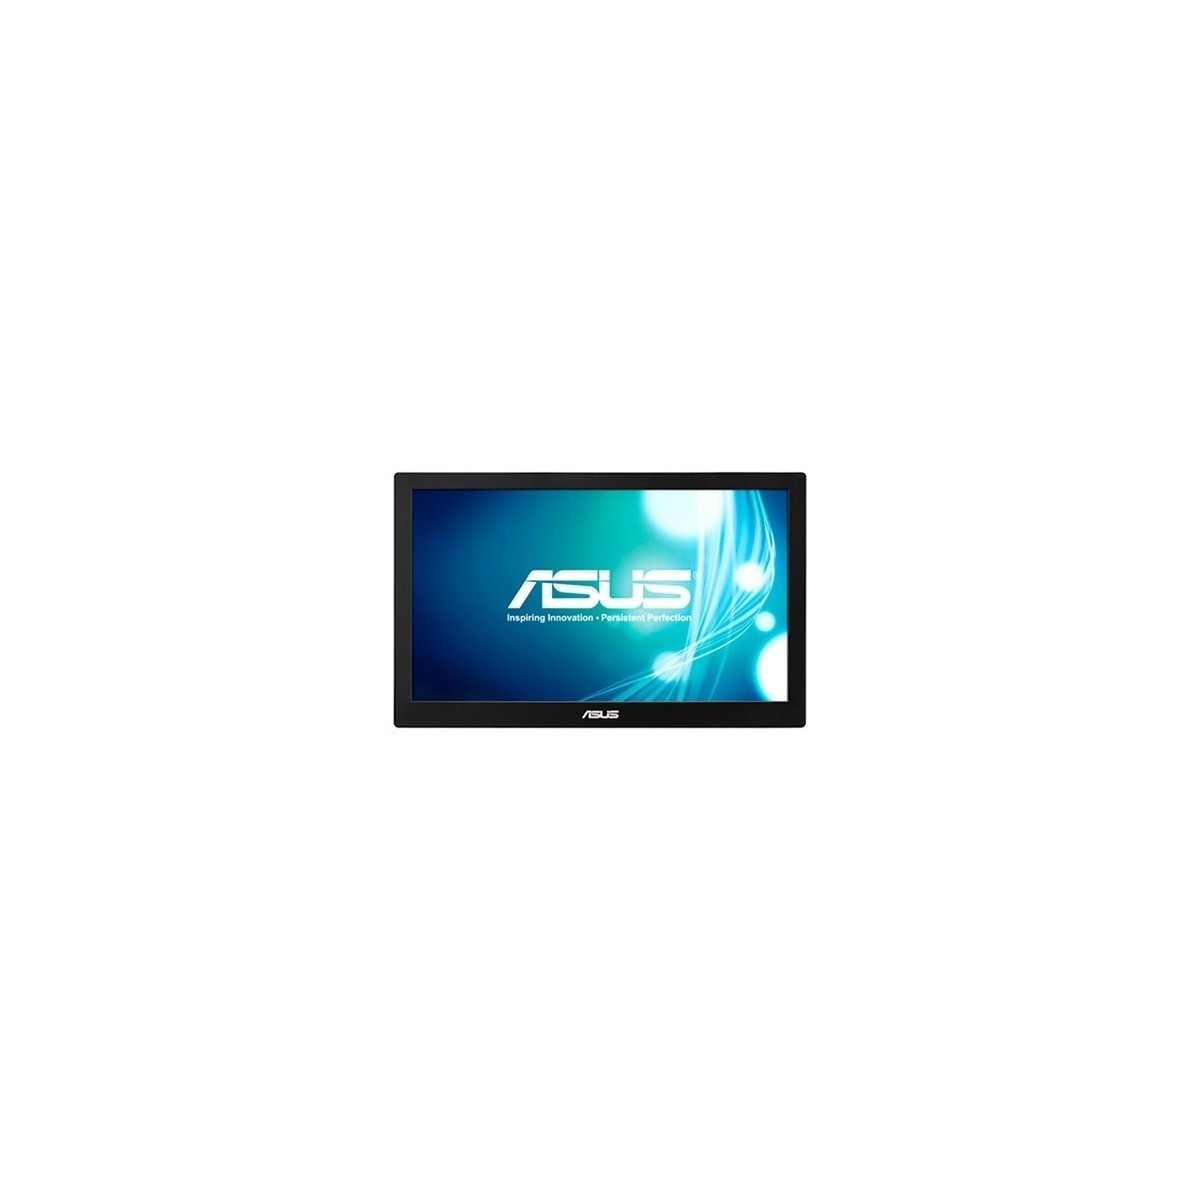 Asus Monitores 90LM00I0-B01170